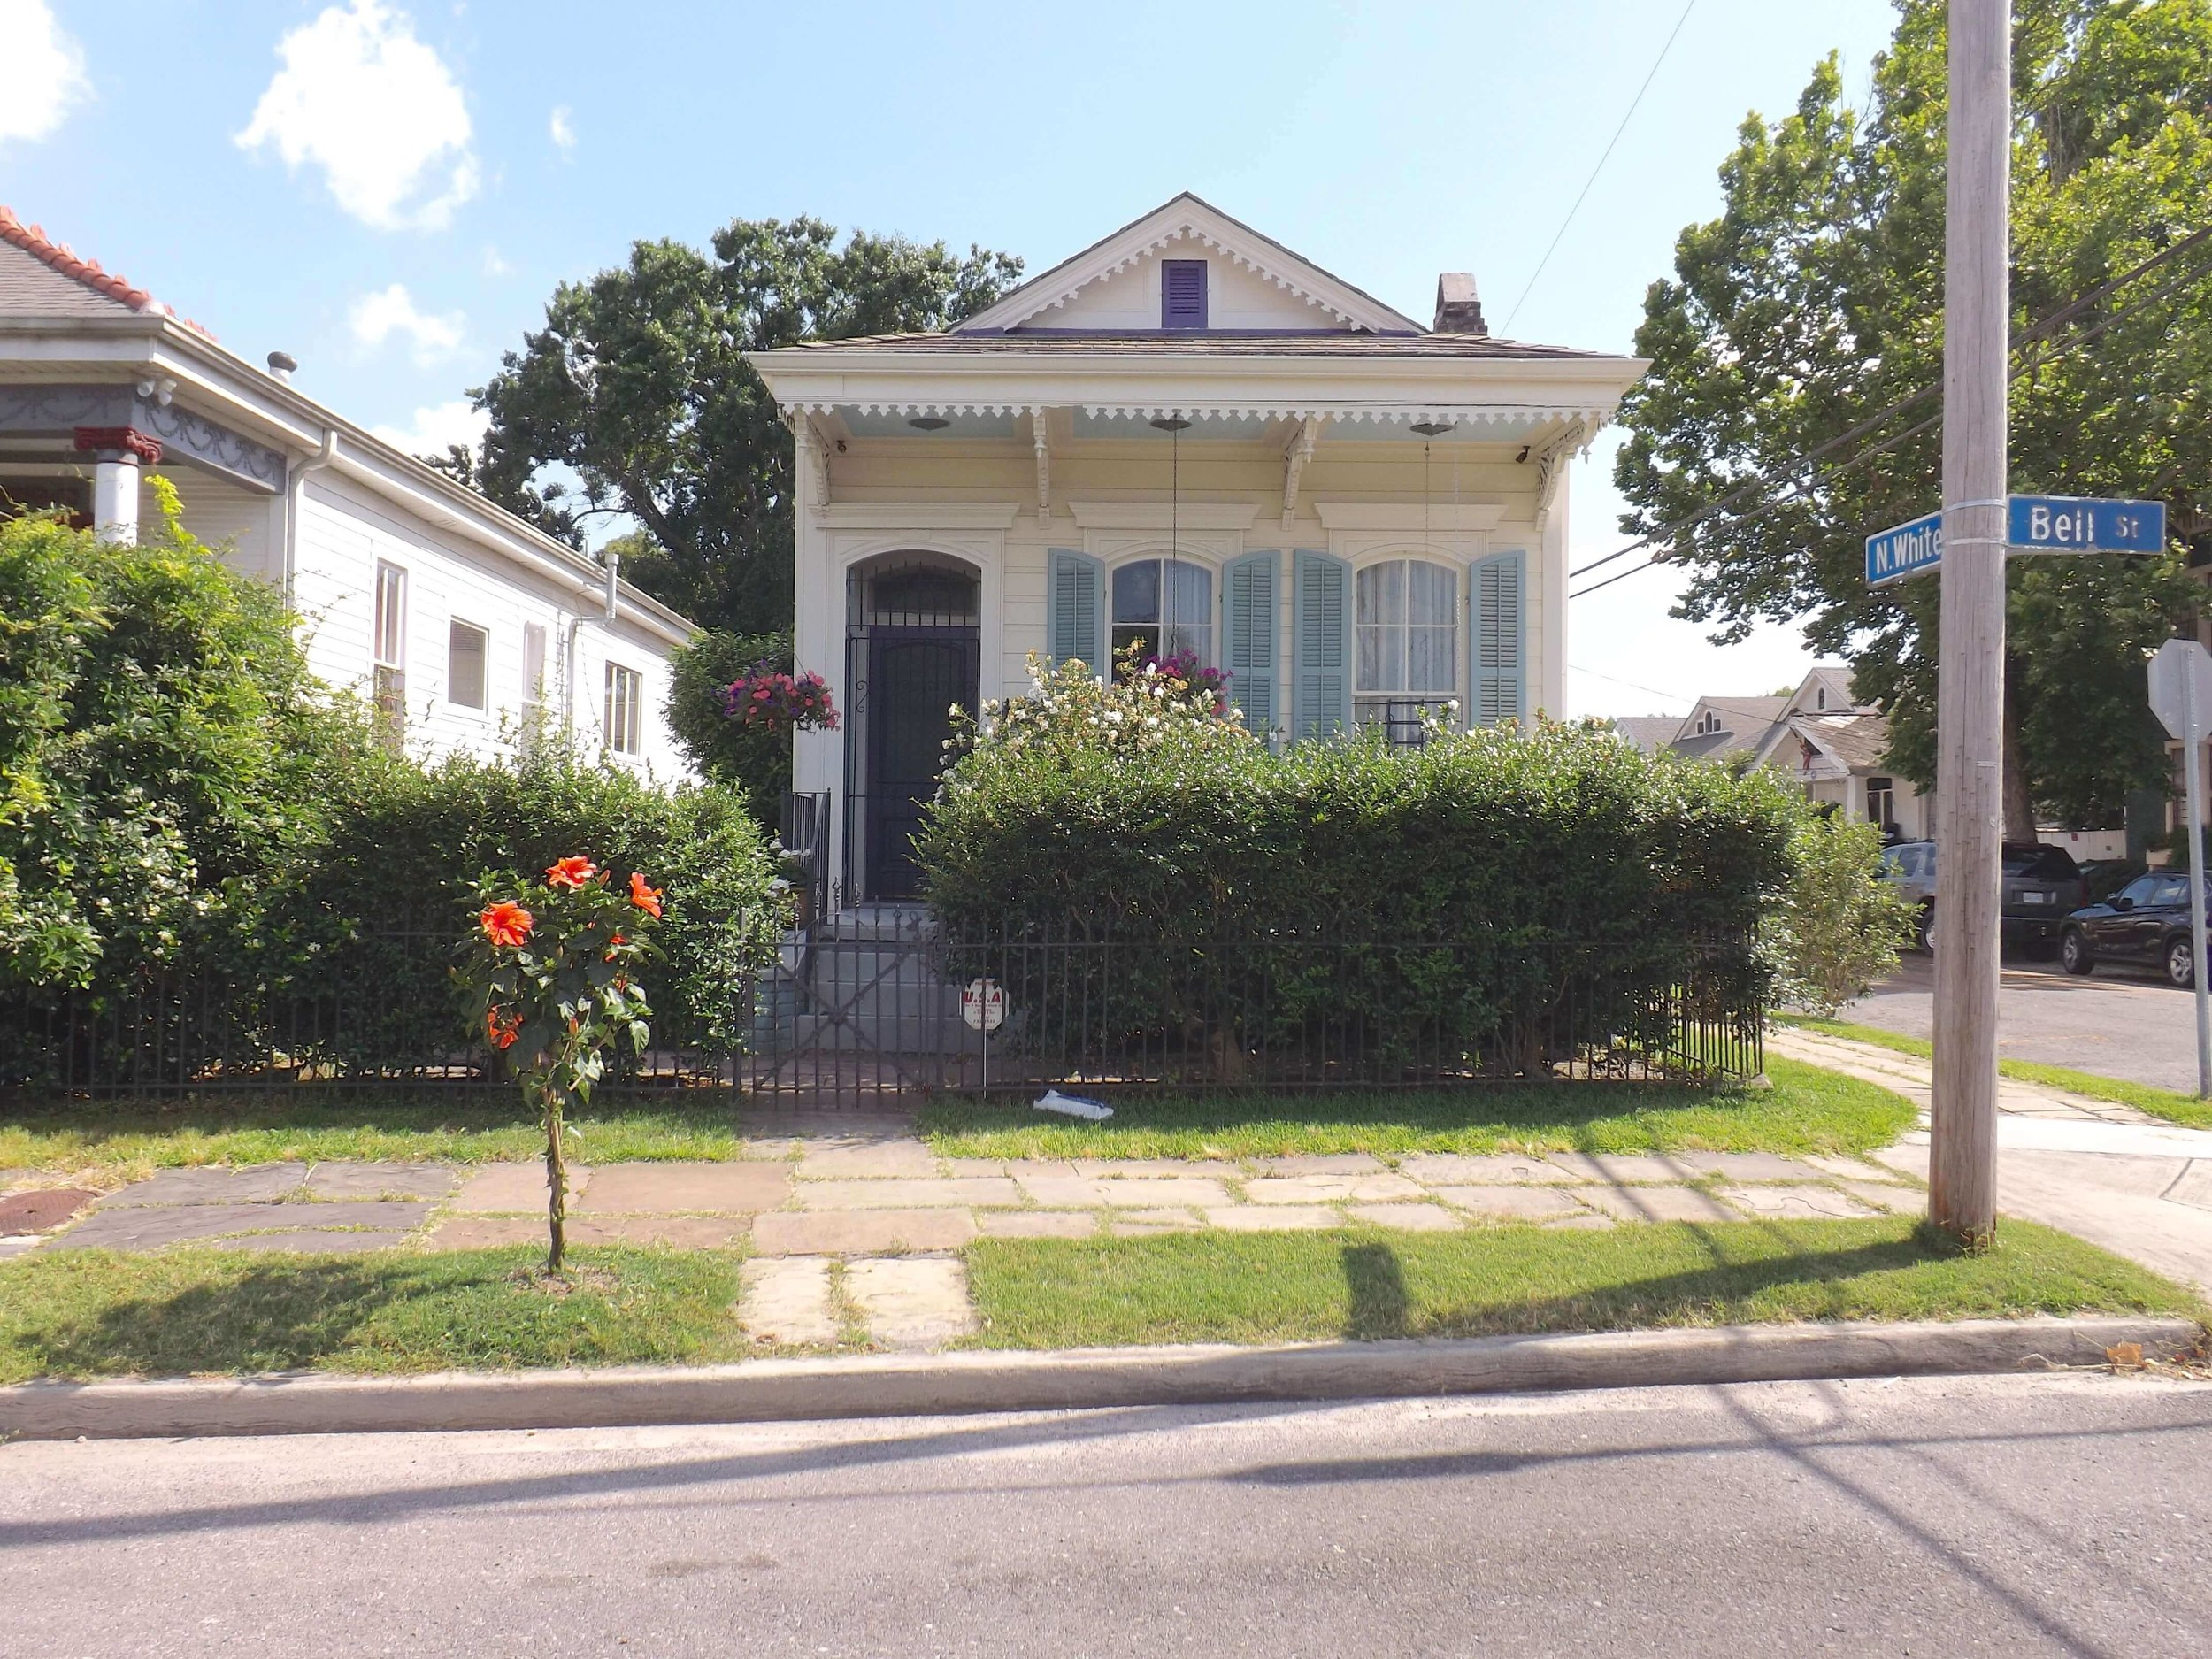 A house on the corner of Bell and N. White Streets off Esplanade Avenue in New Orleans.